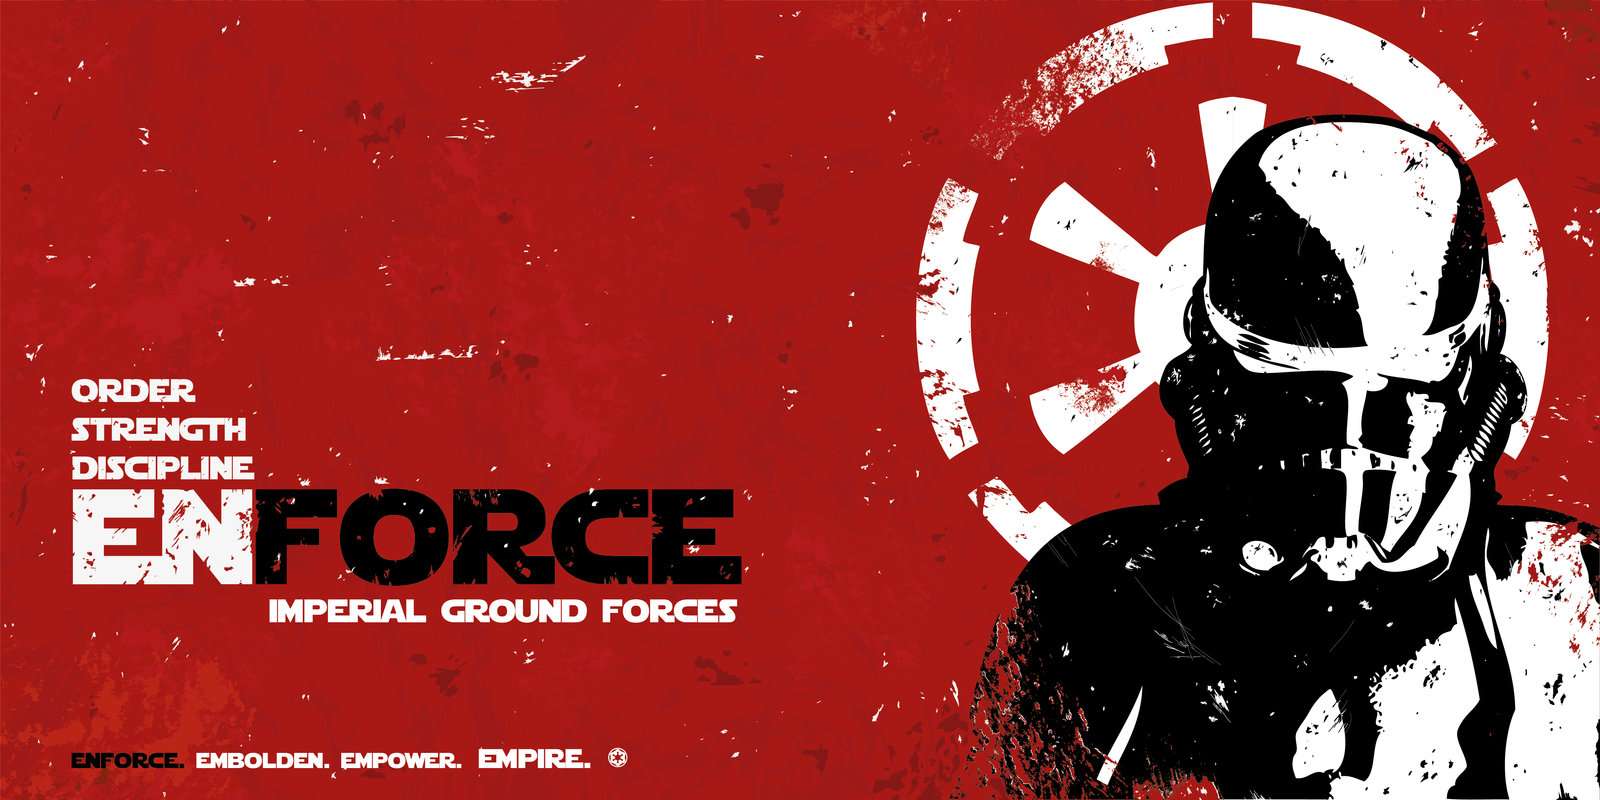 Join the Empire Ground Forces by The Procrastinator 1600x800